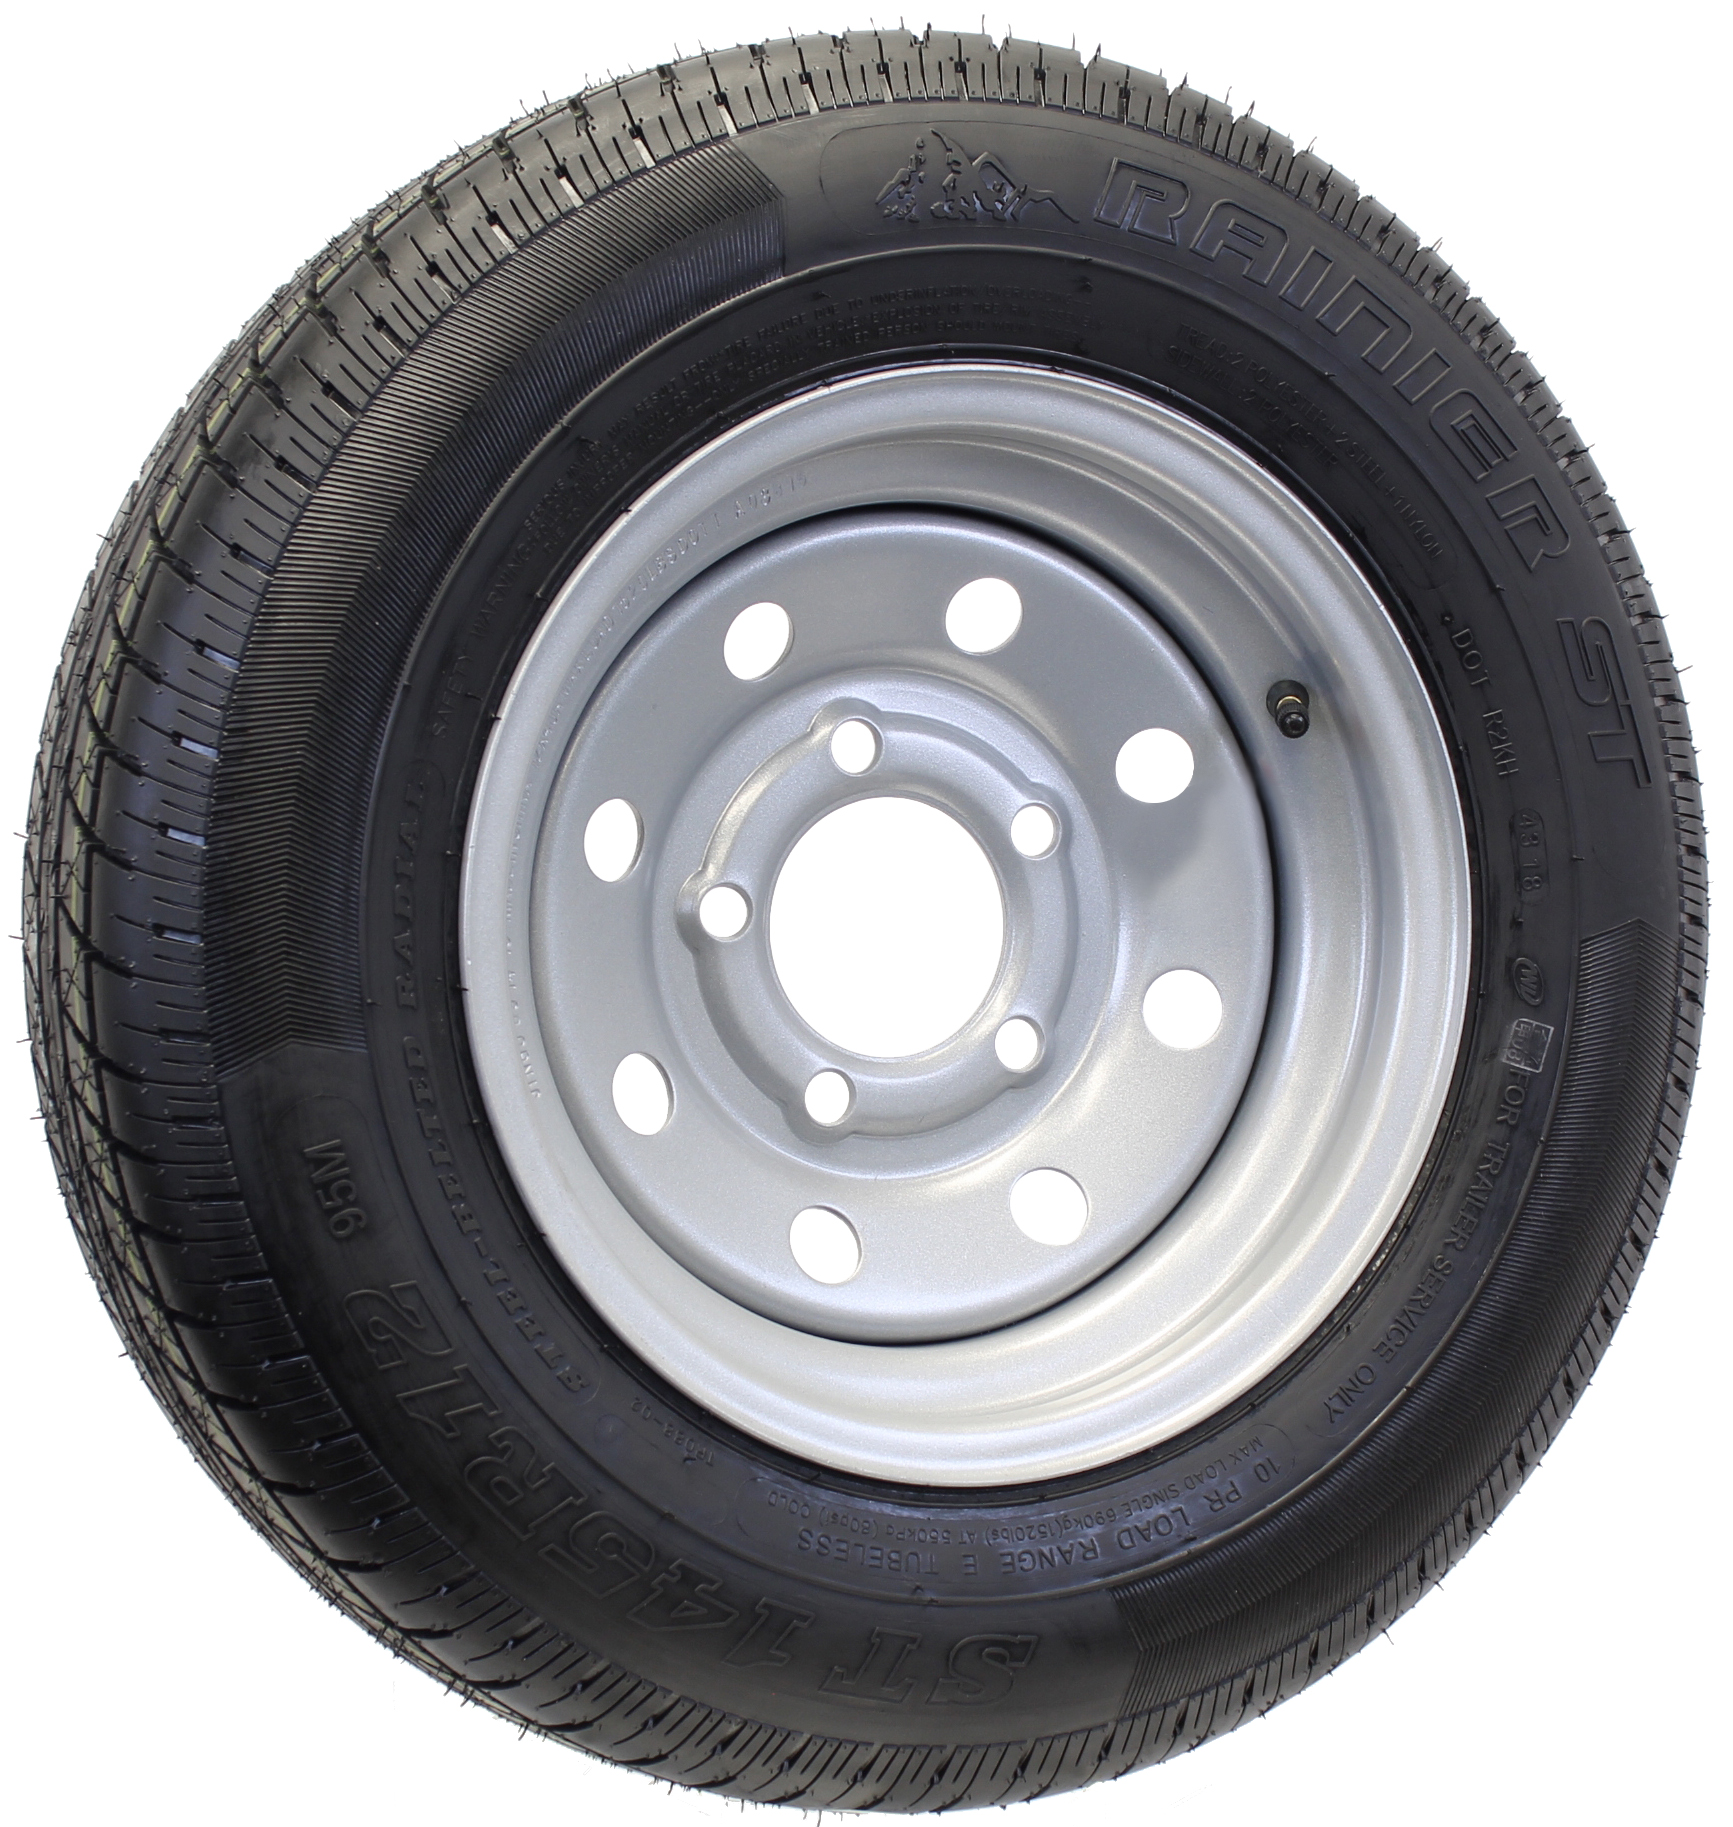 Rainier ST145R12E Radial Tire on 12X4 5-4.5 Silver Mod .50 Offset HD Image